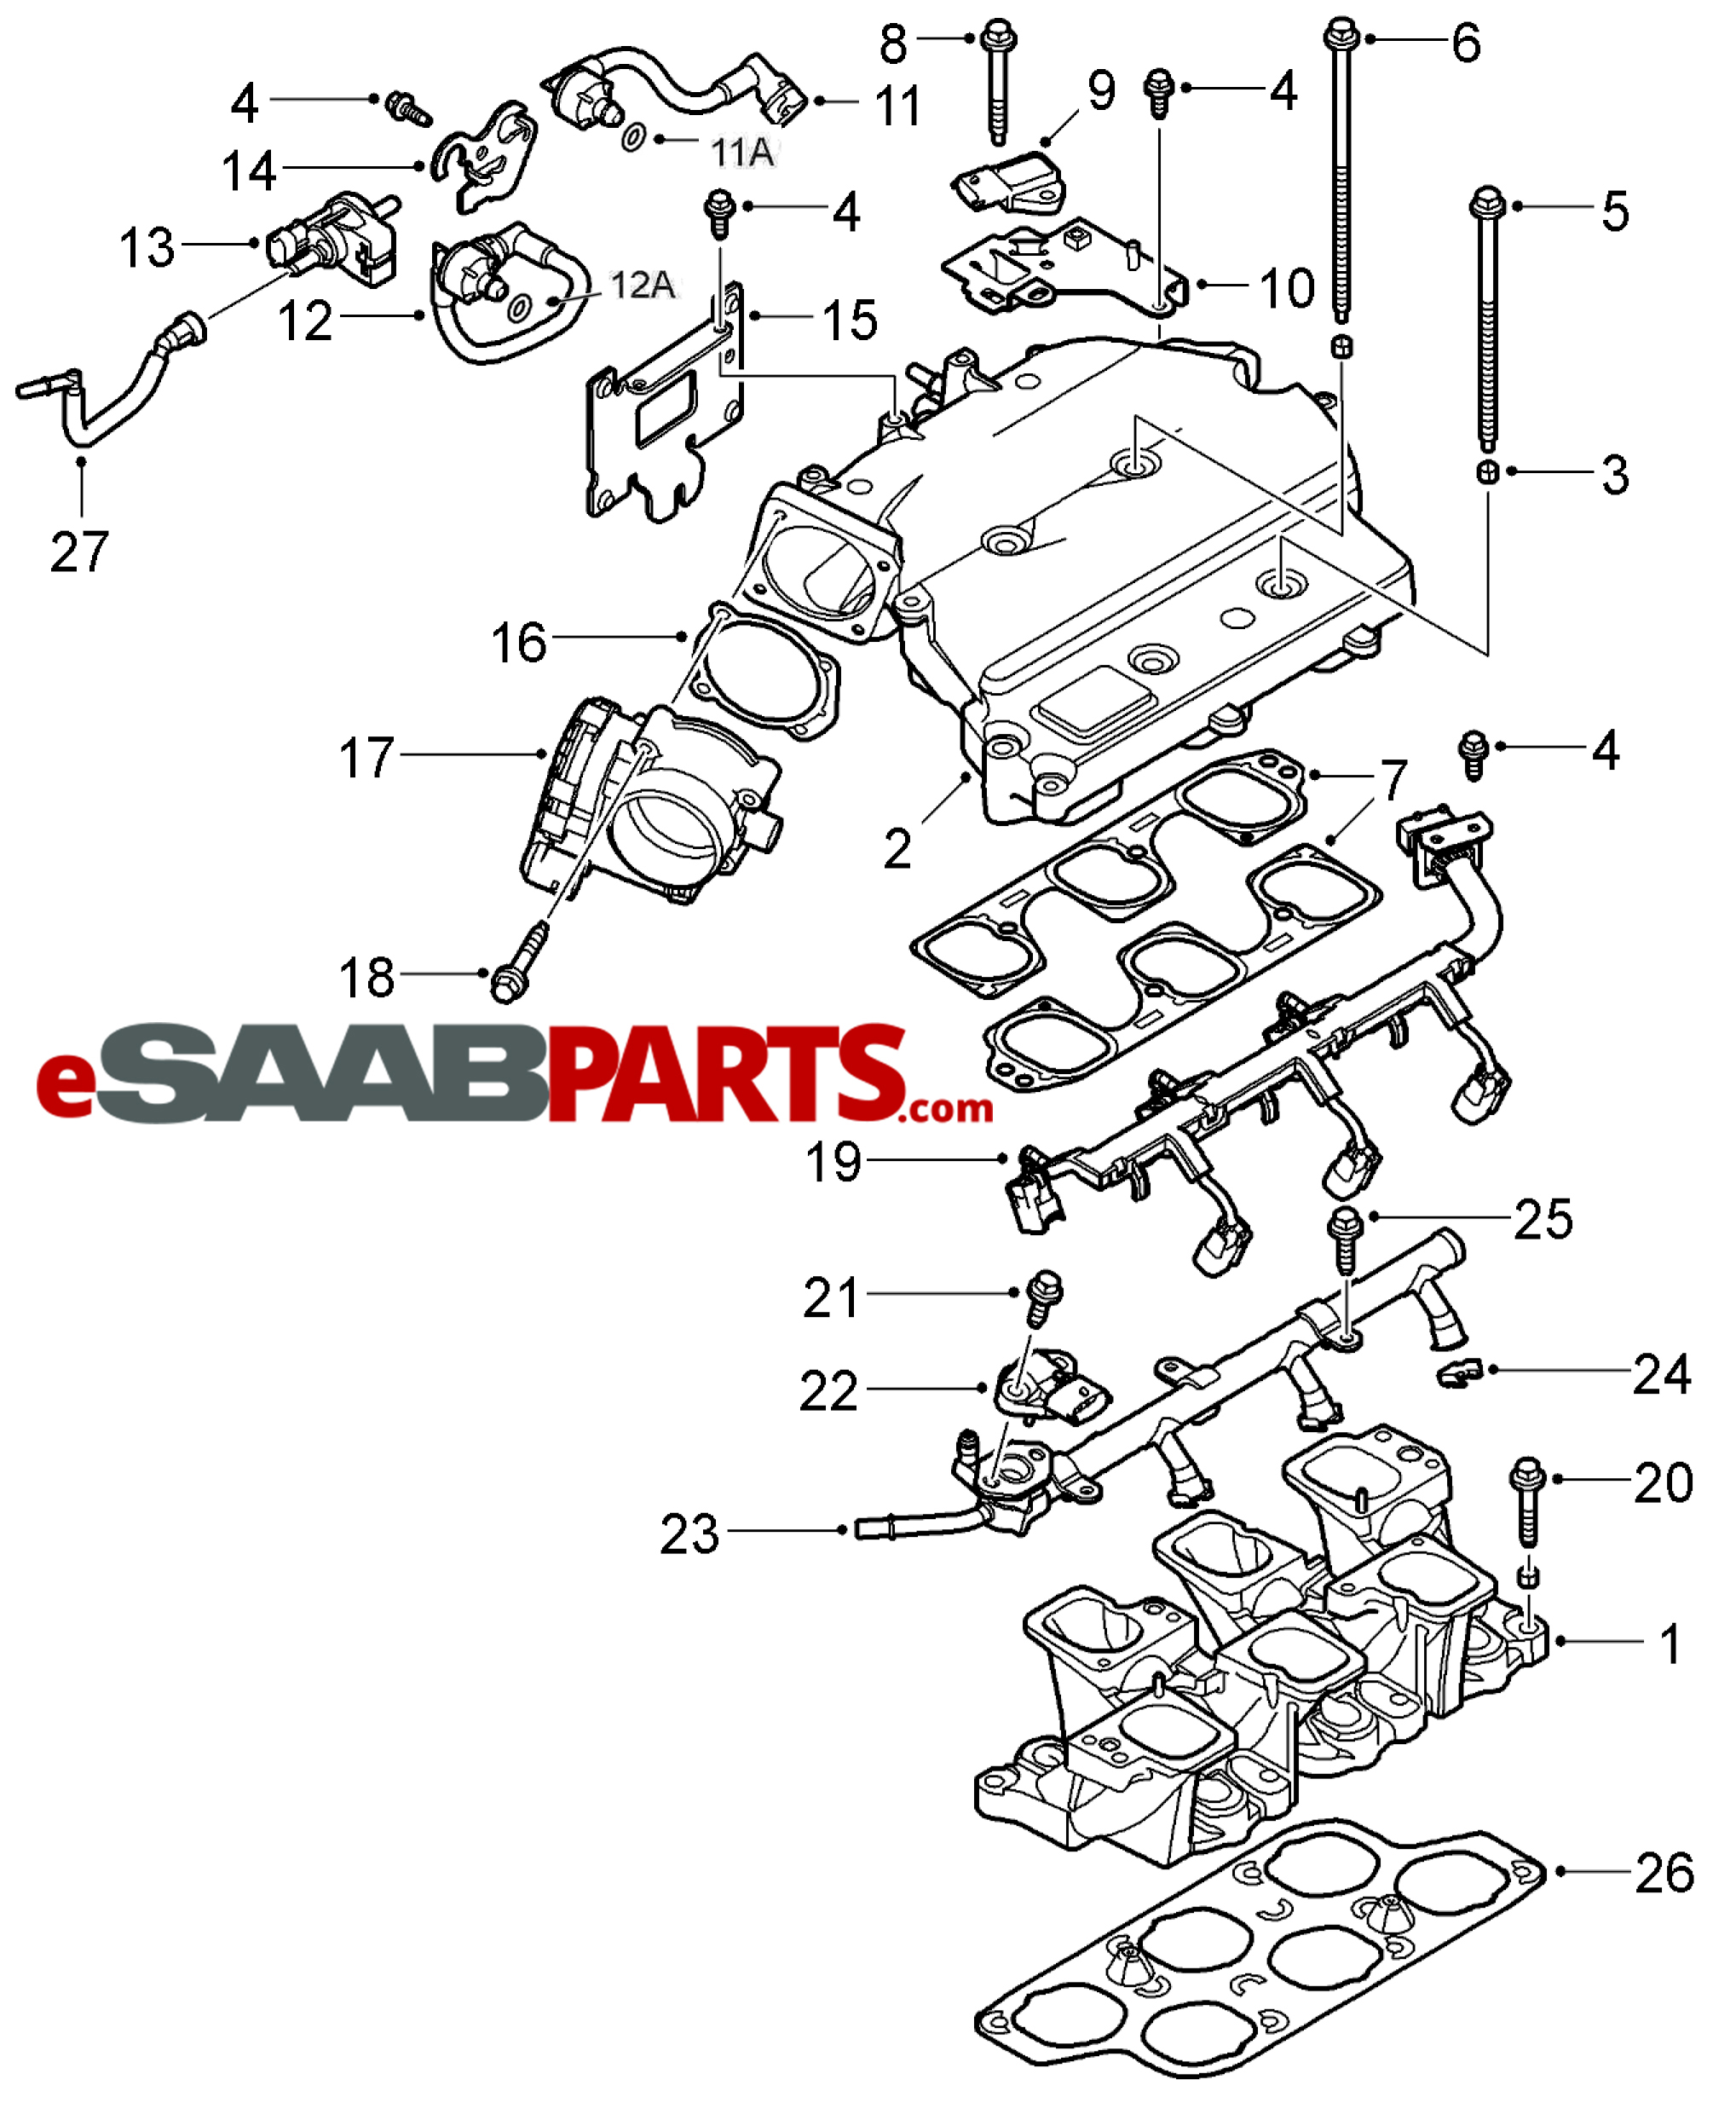 saab clutch diagram